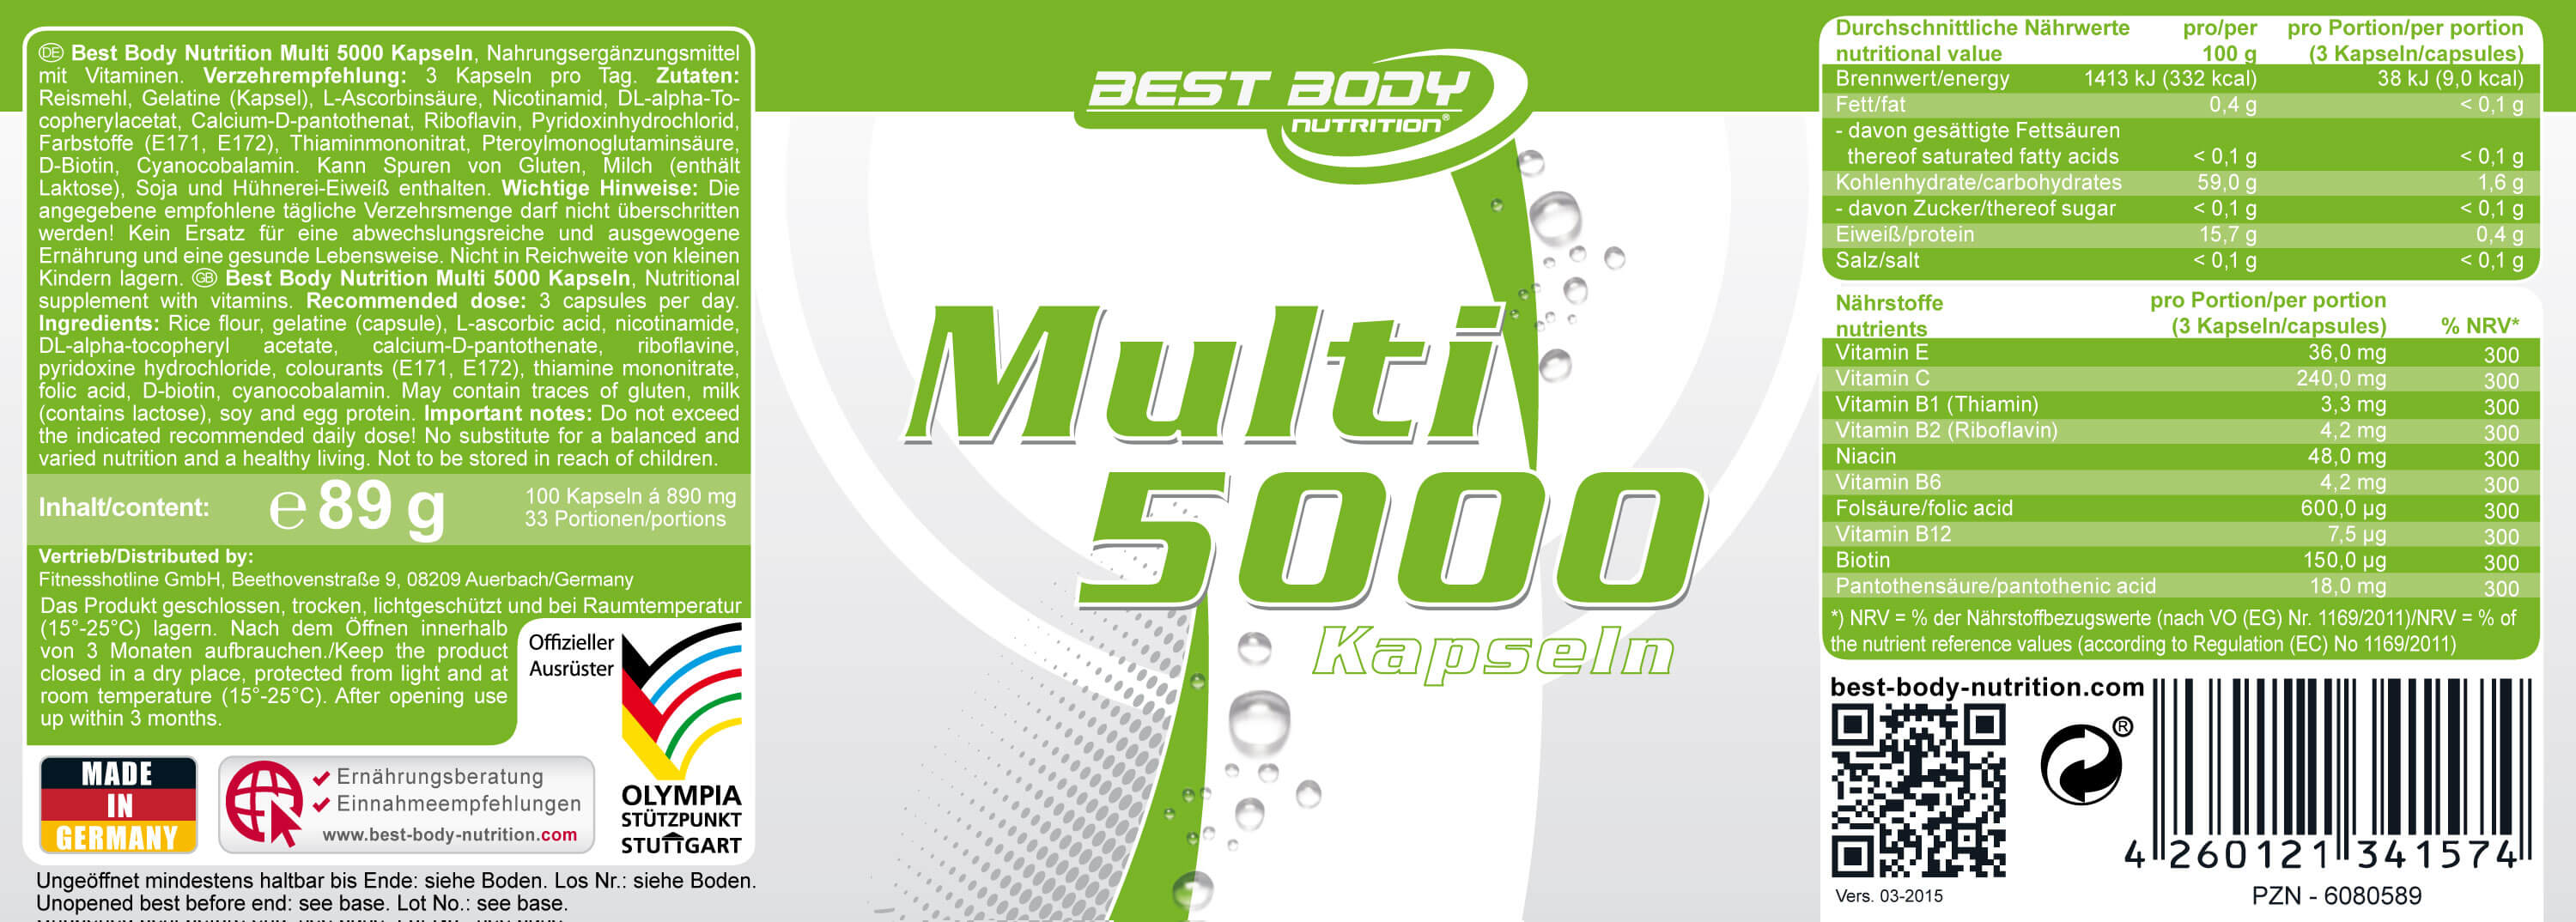 Best Body Nutrition Multi 5000 Etikett